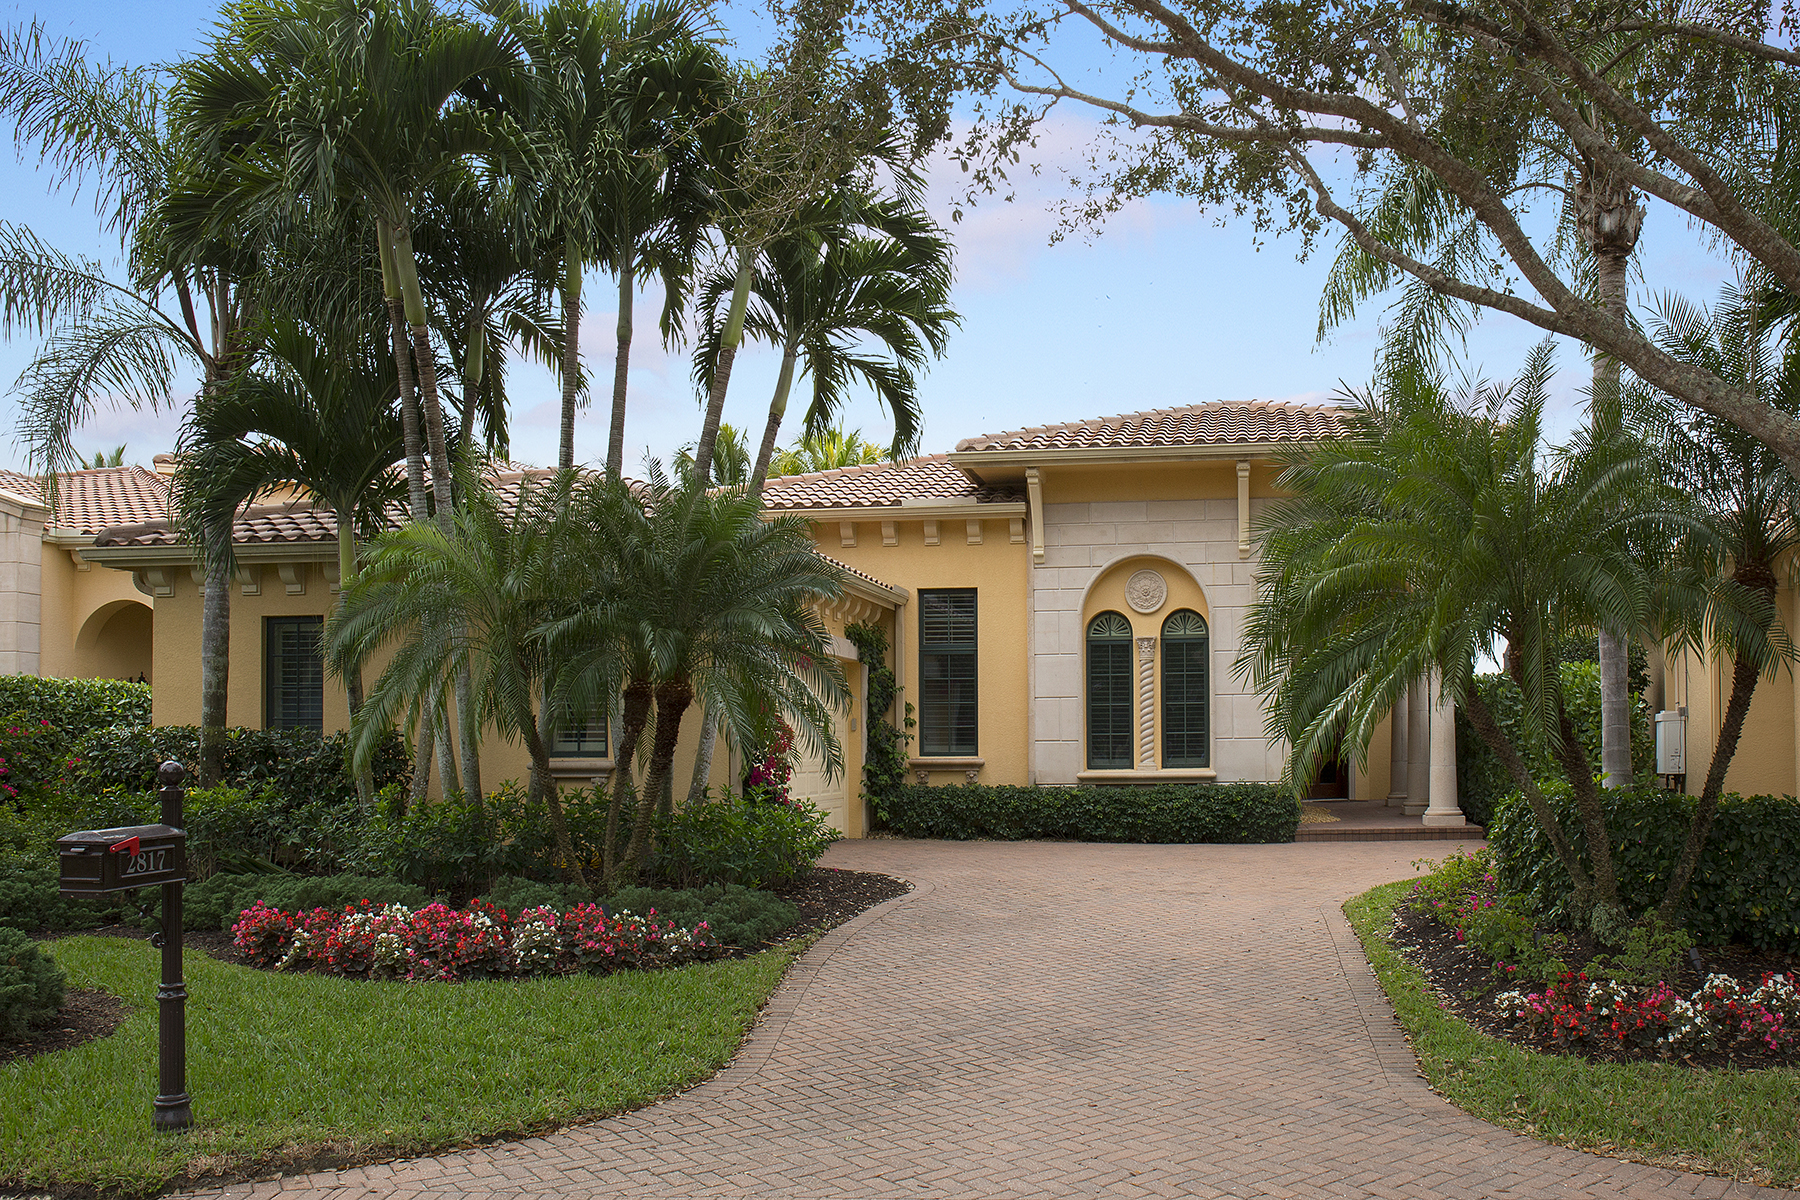 Single Family Home for Sale at GREY OAKS 2817 Capistrano Way Grey Oaks, Naples, Florida, 34105 United States